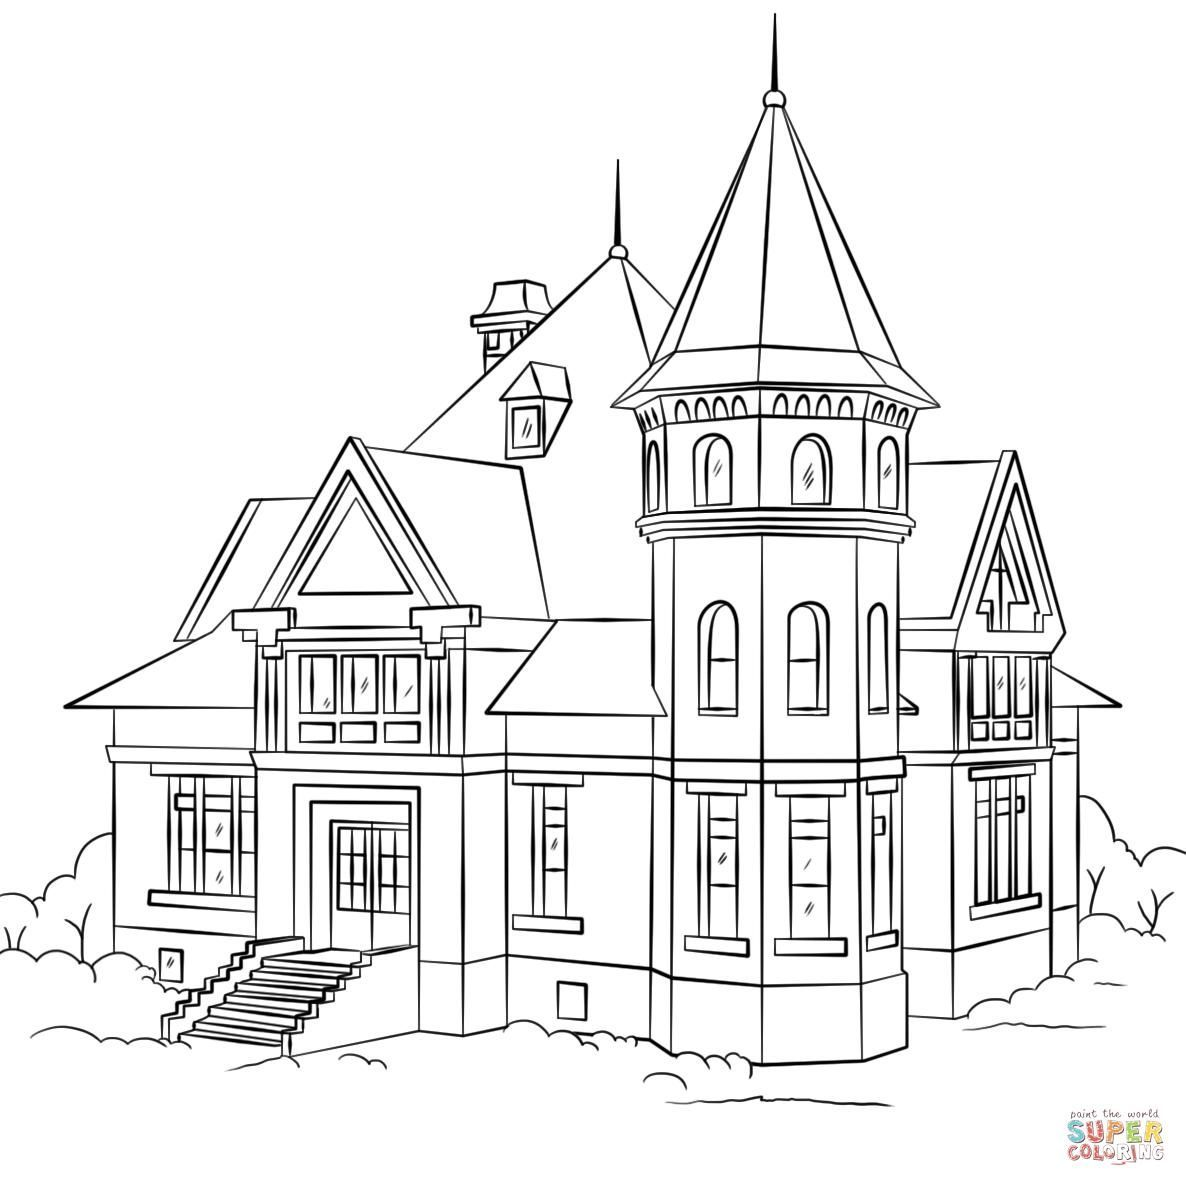 coloring image of house inside house coloring pages at getcoloringscom free of house image coloring